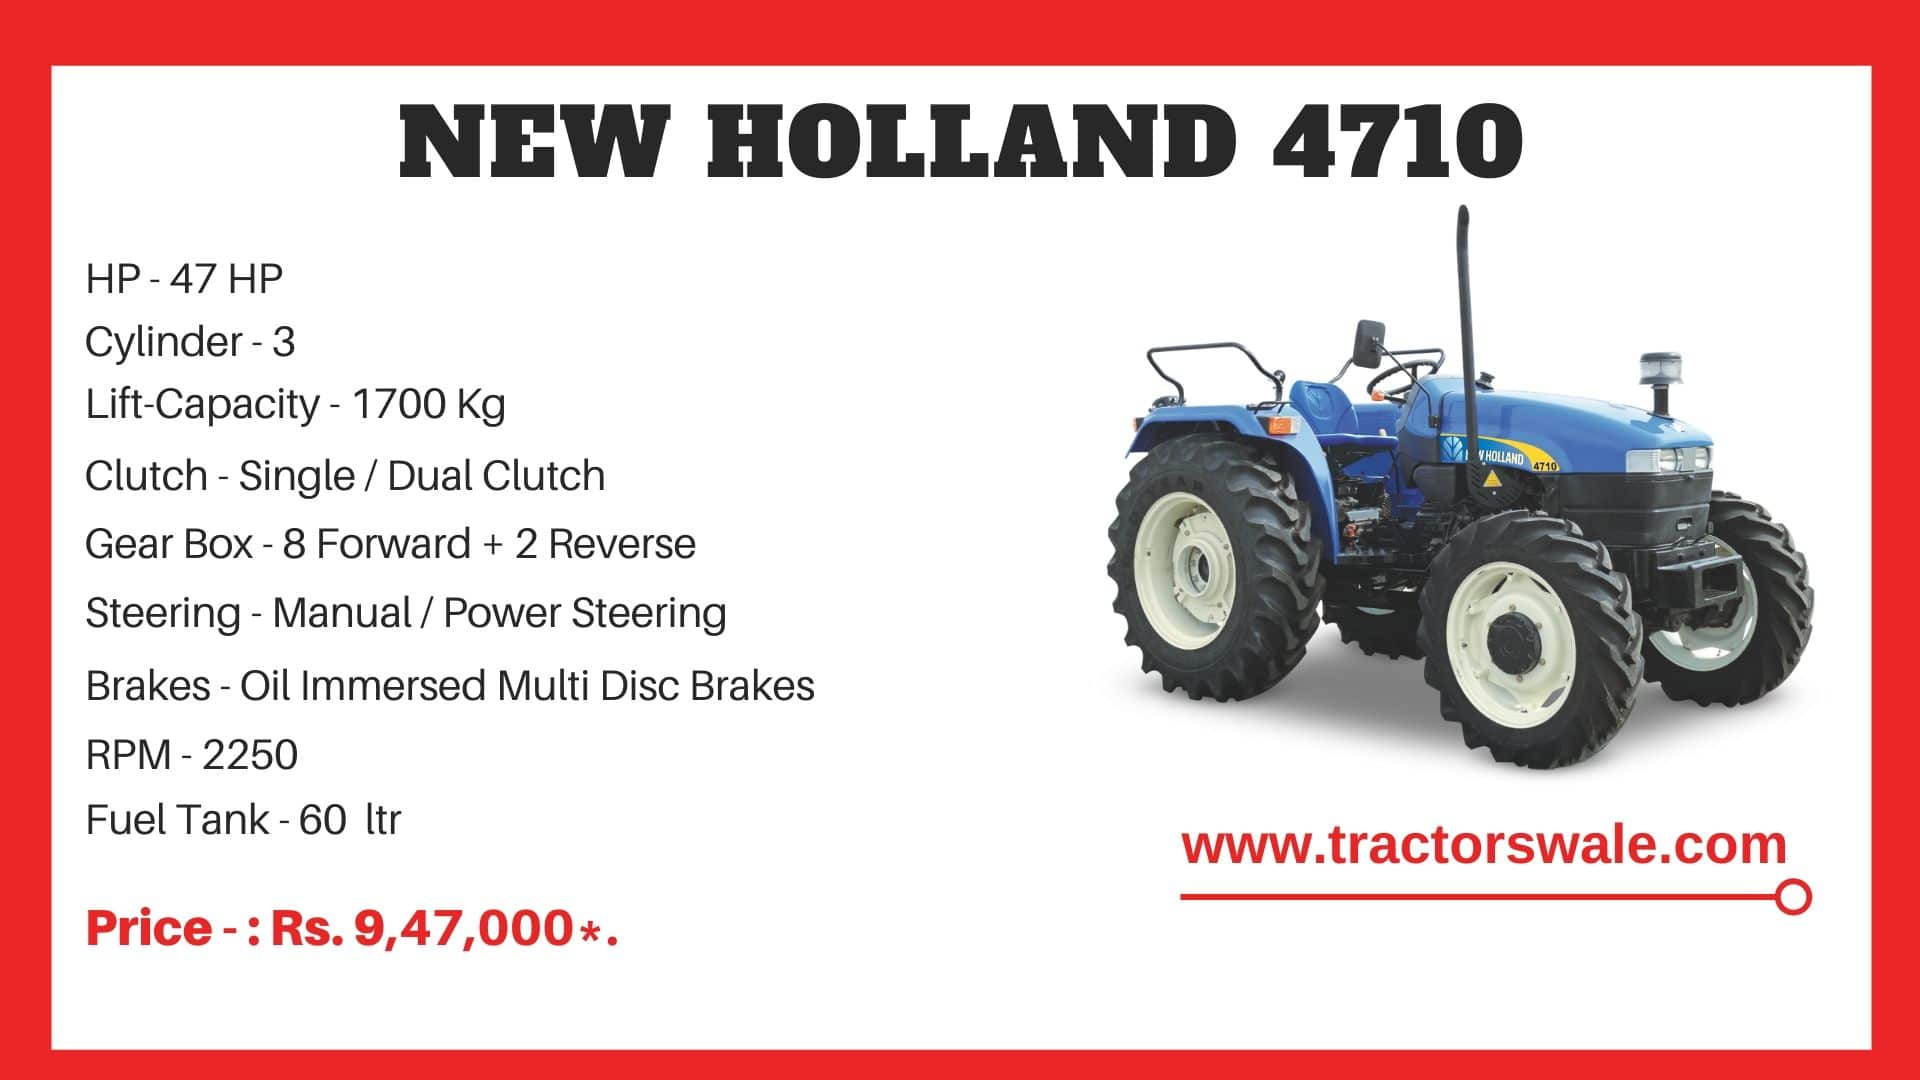 New Holland 4710 tractor price